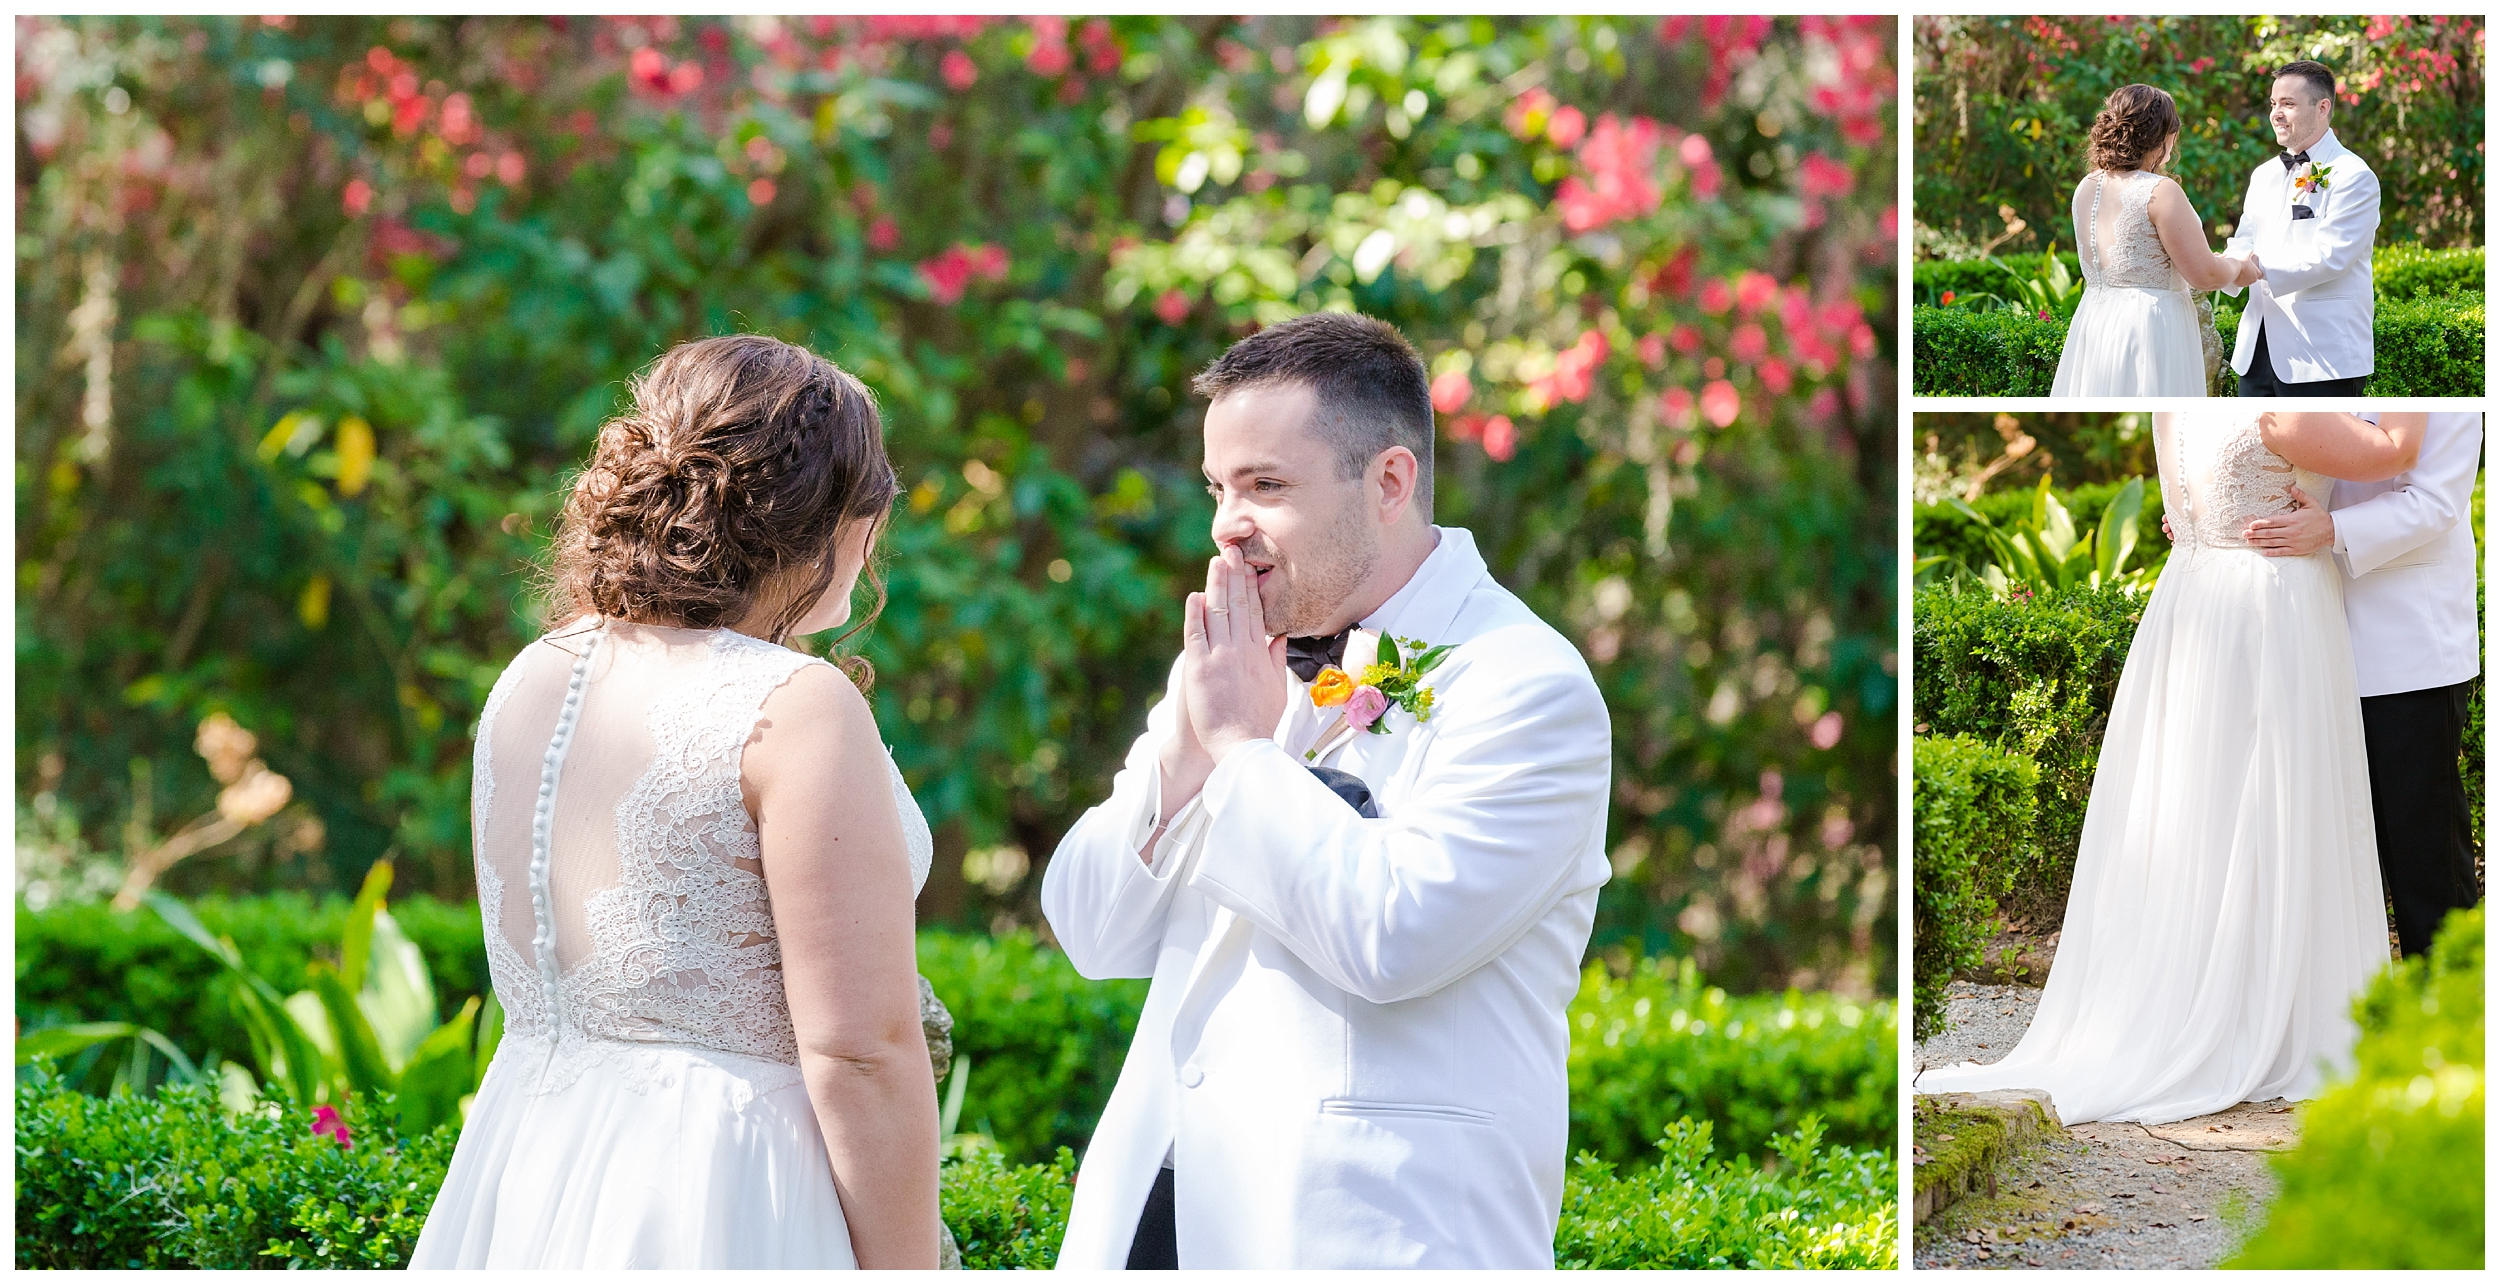 groom sees bride for the first time on wedding day in flowerdale garden